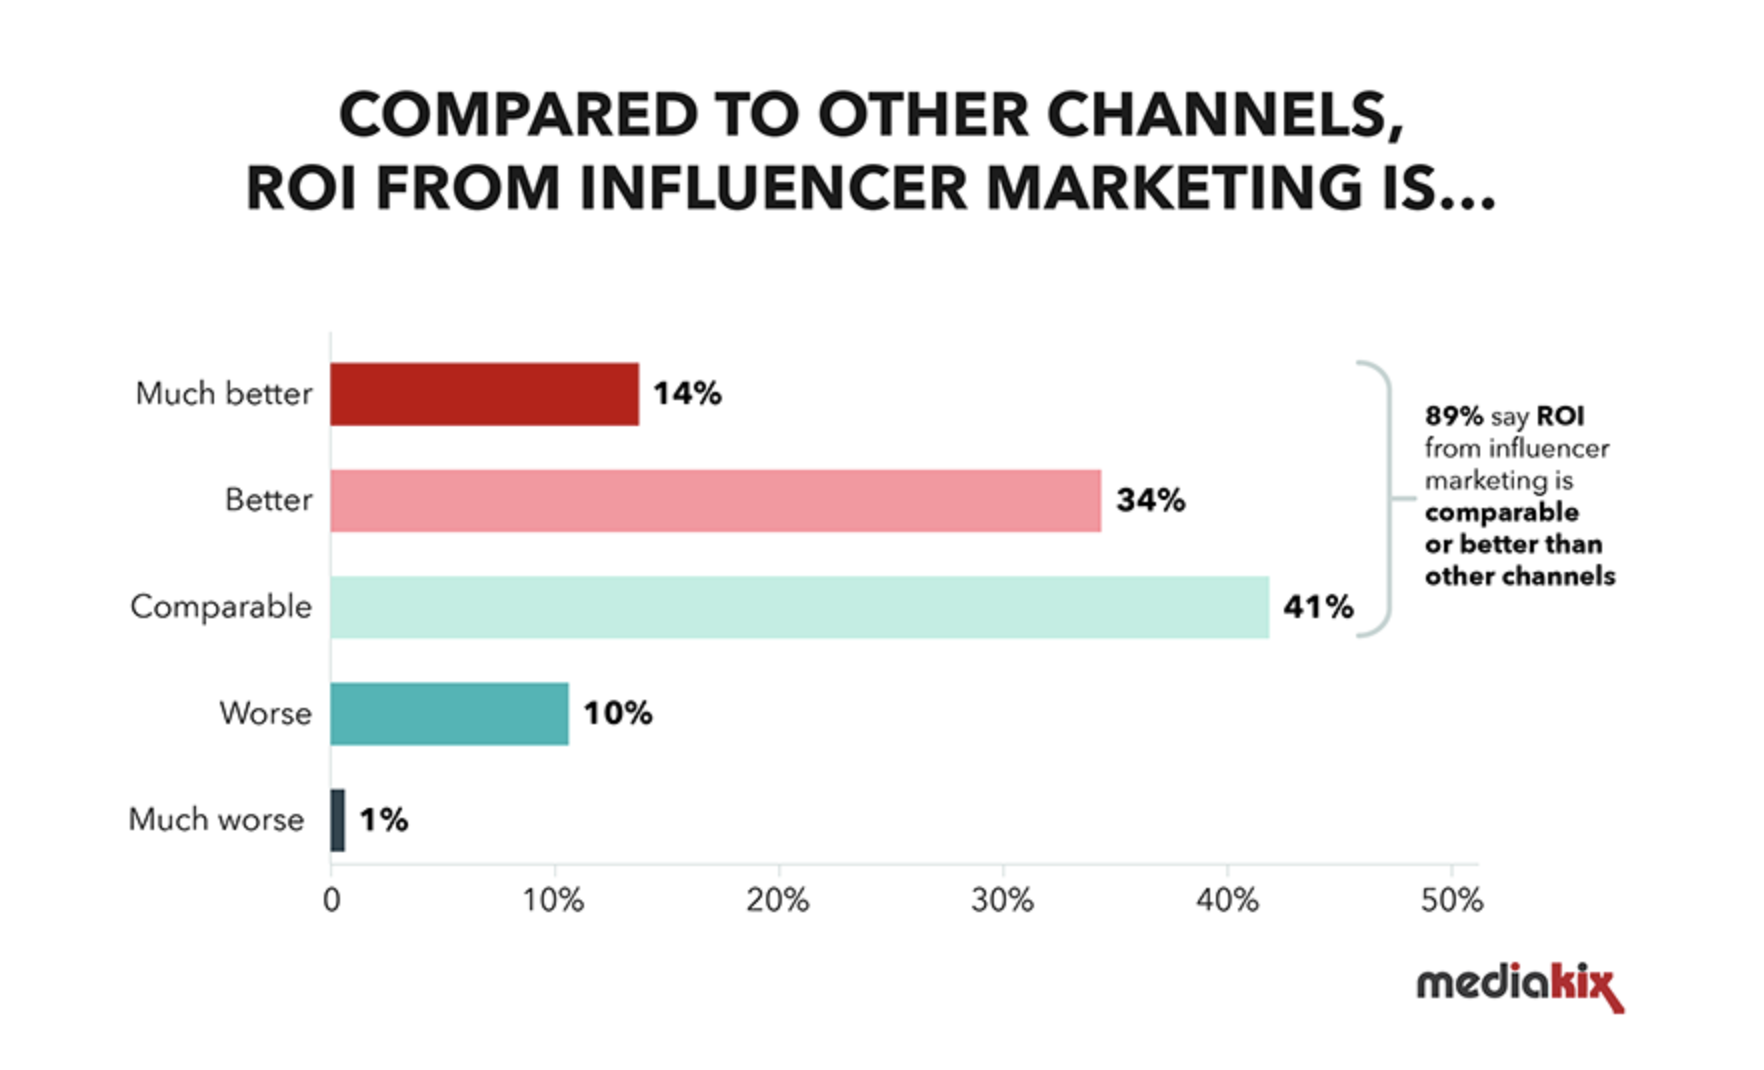 89% of marketers say ROI from influencer marketing is comparable to other marketing channels.